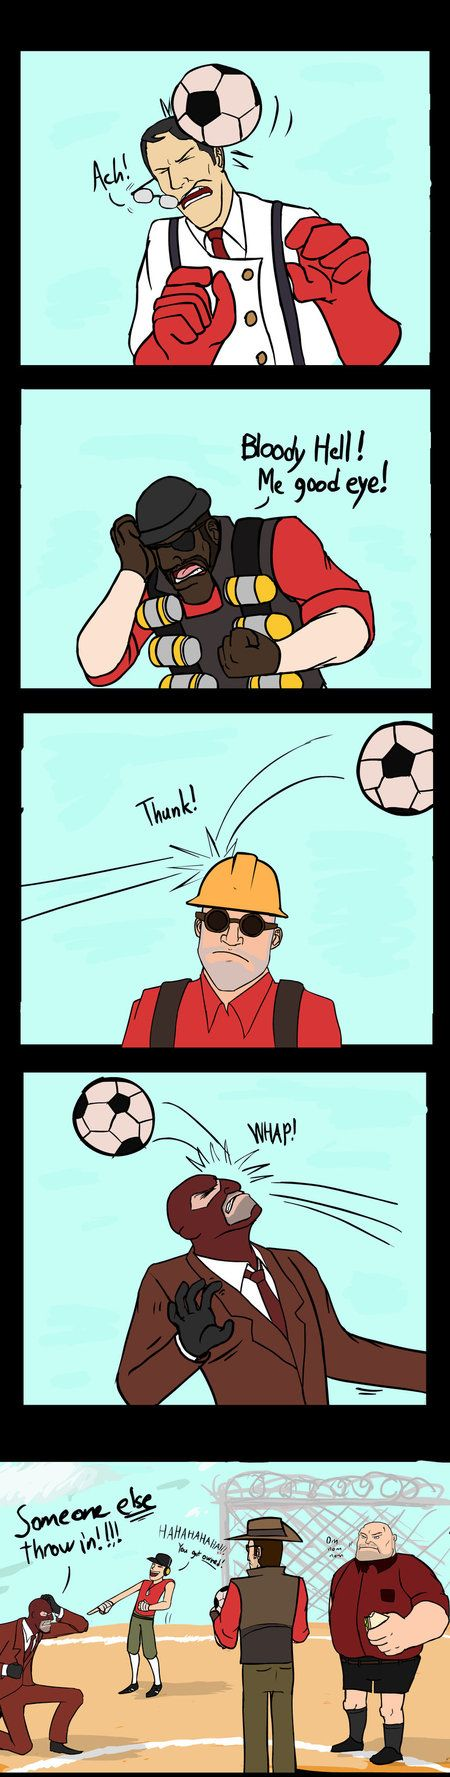 Team Football 2 by Pandadrake on DeviantArt